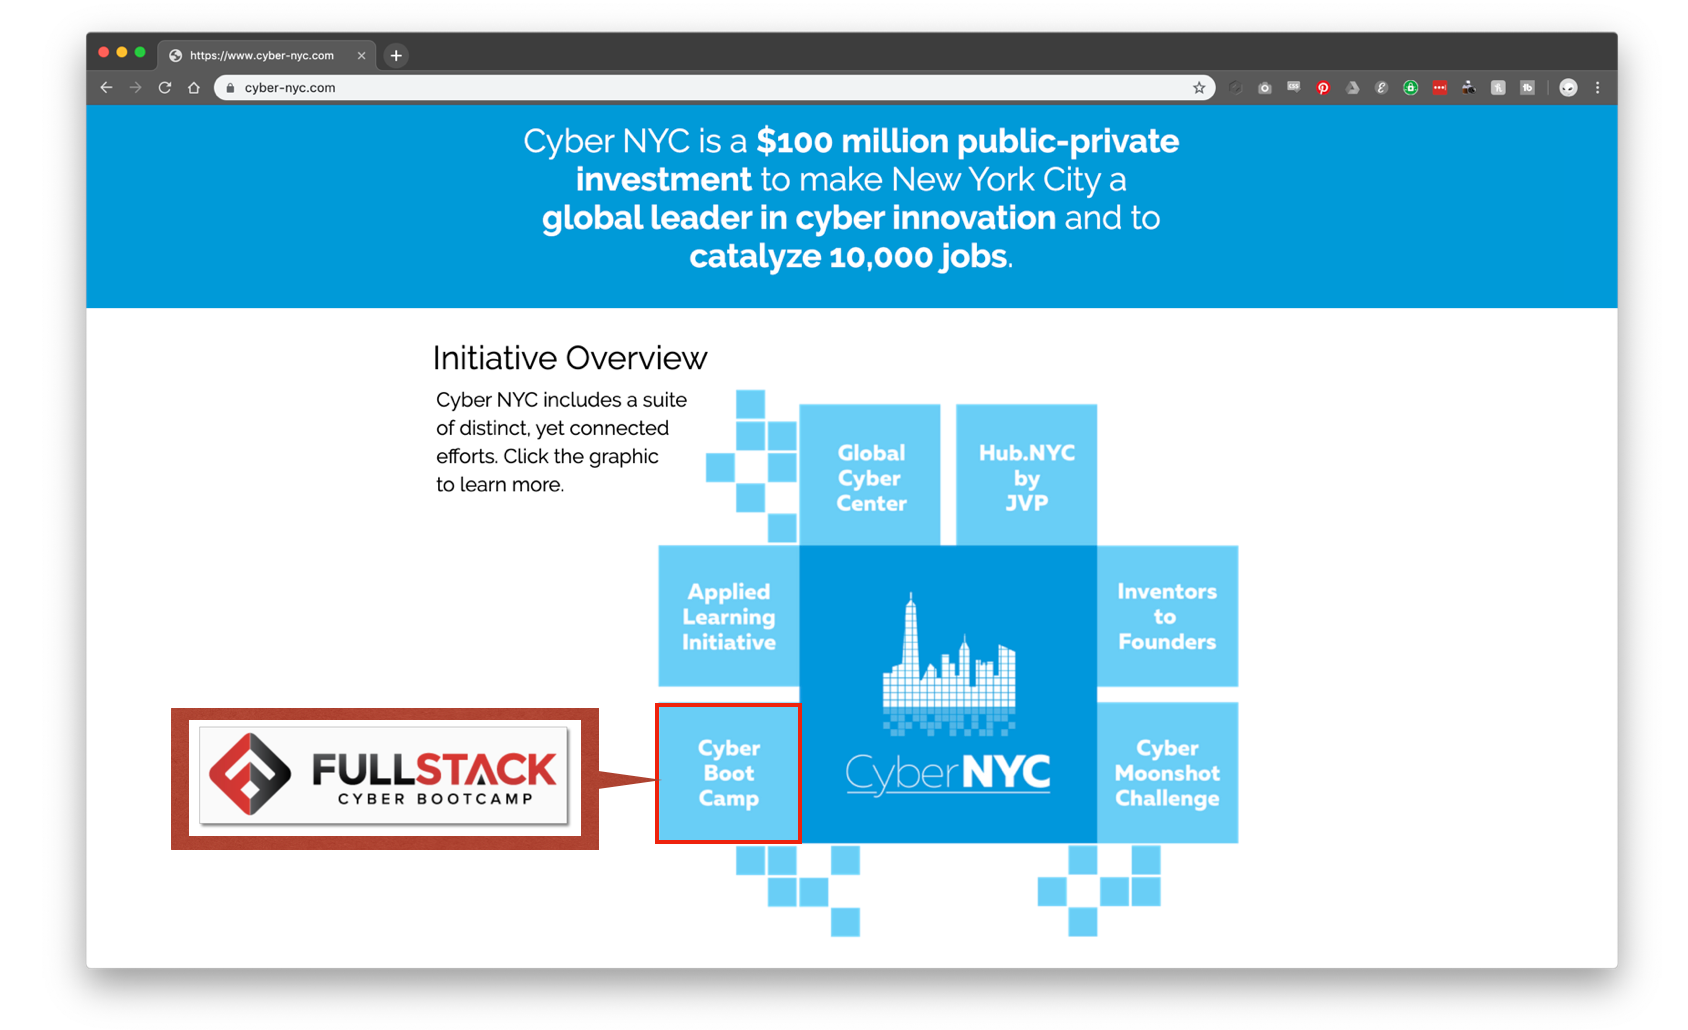 CyberNYC Initiative Overview